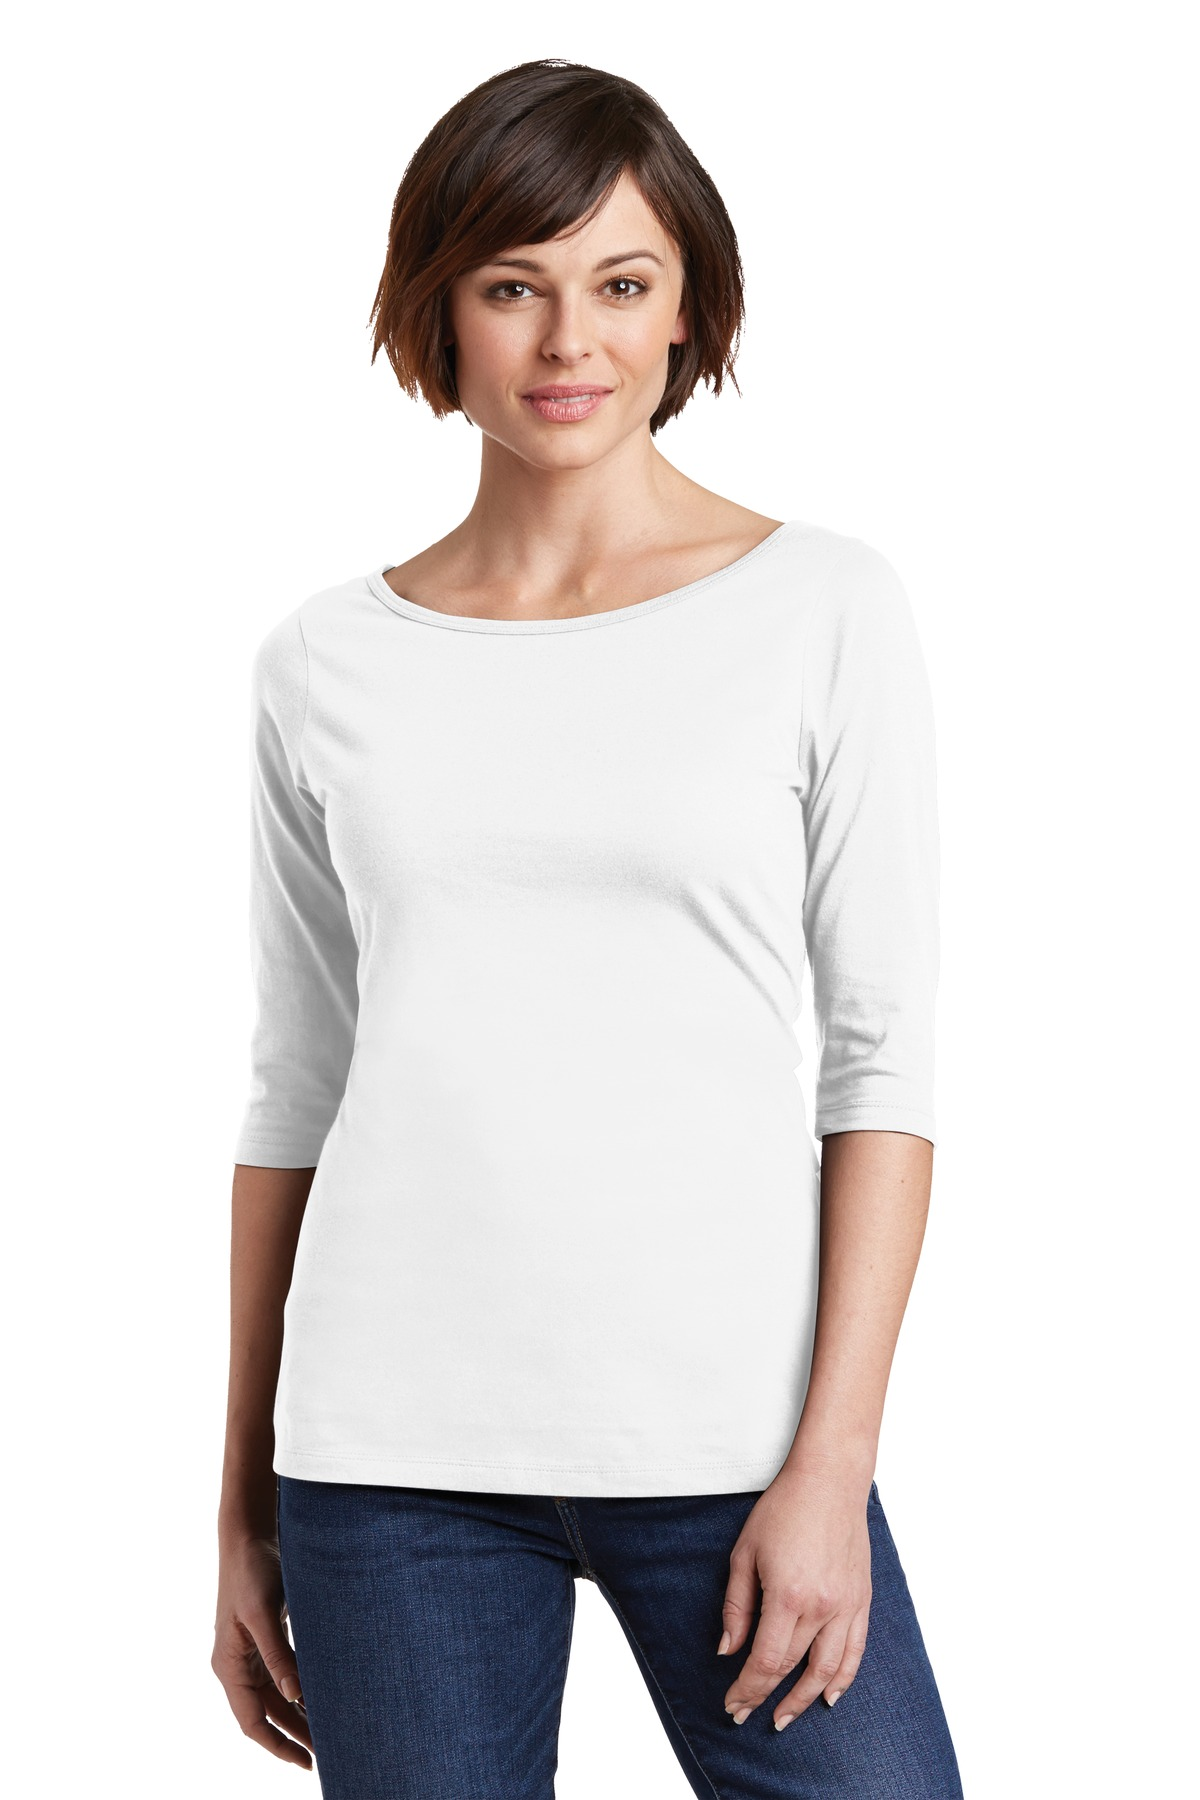 District Made  Ladies Perfect Weight  DM107L - 3/4 Sleeve Tee